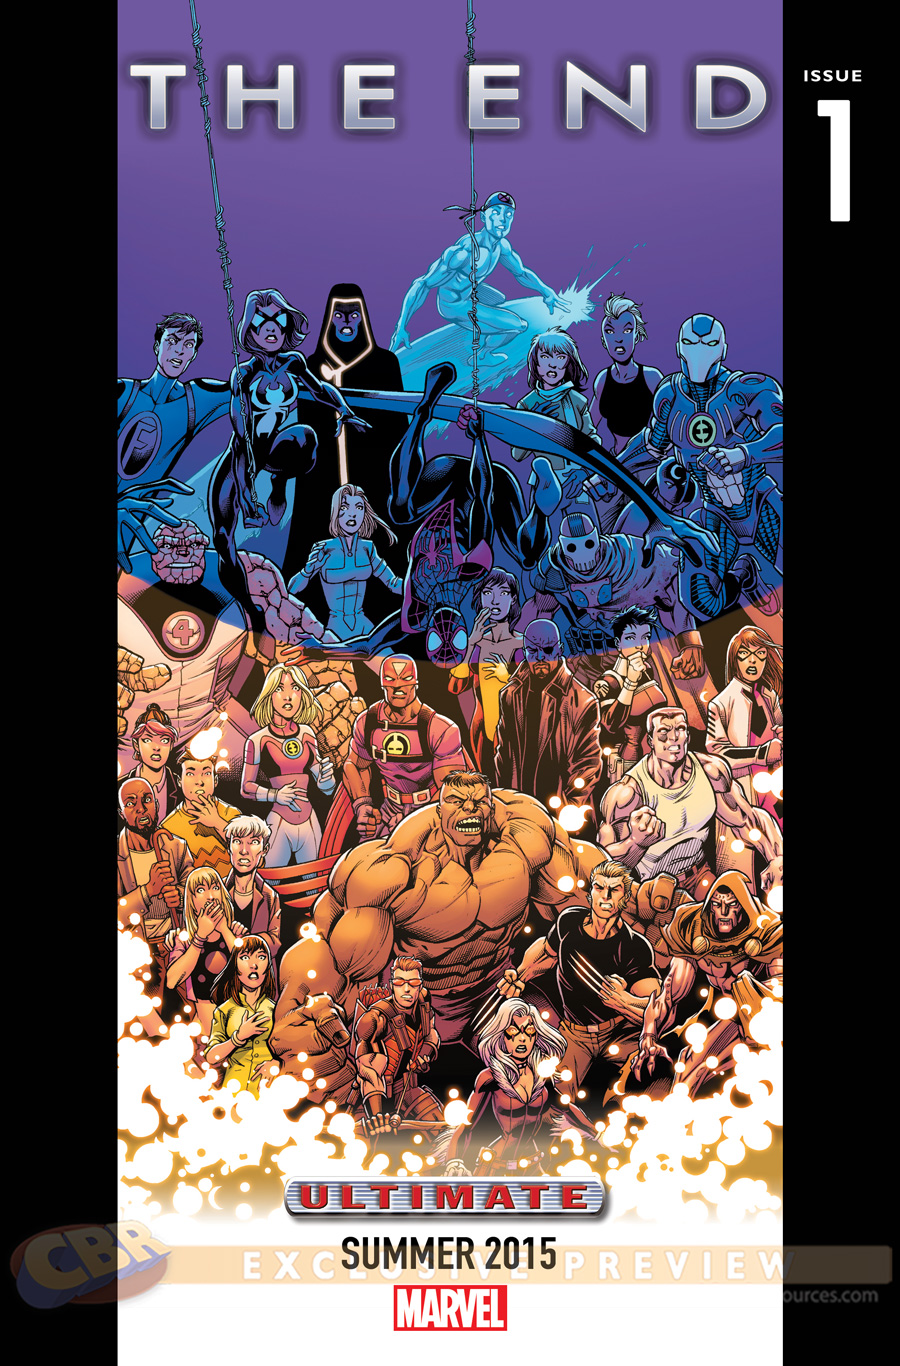 Ultimate-Universe-The-End-2015-teaser